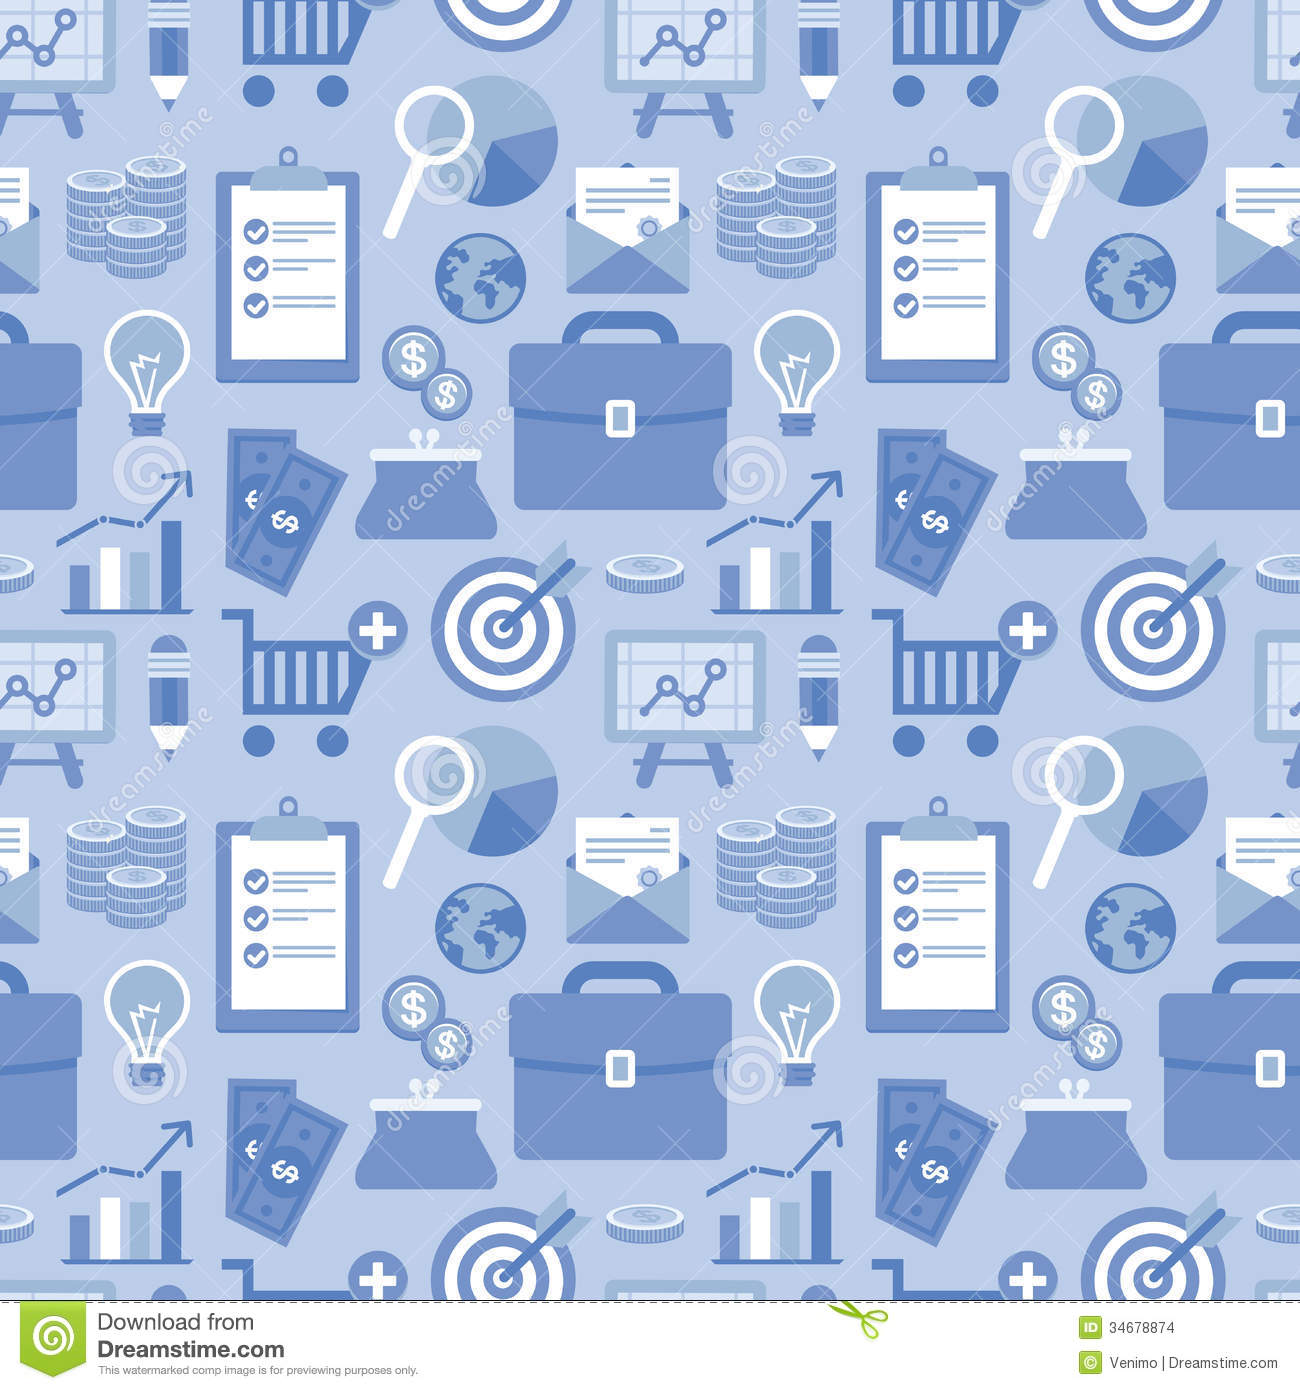 Vector Flat Seamless Pattern Business Icons Style Finance Signs Blue Color Website Background Group Images Over